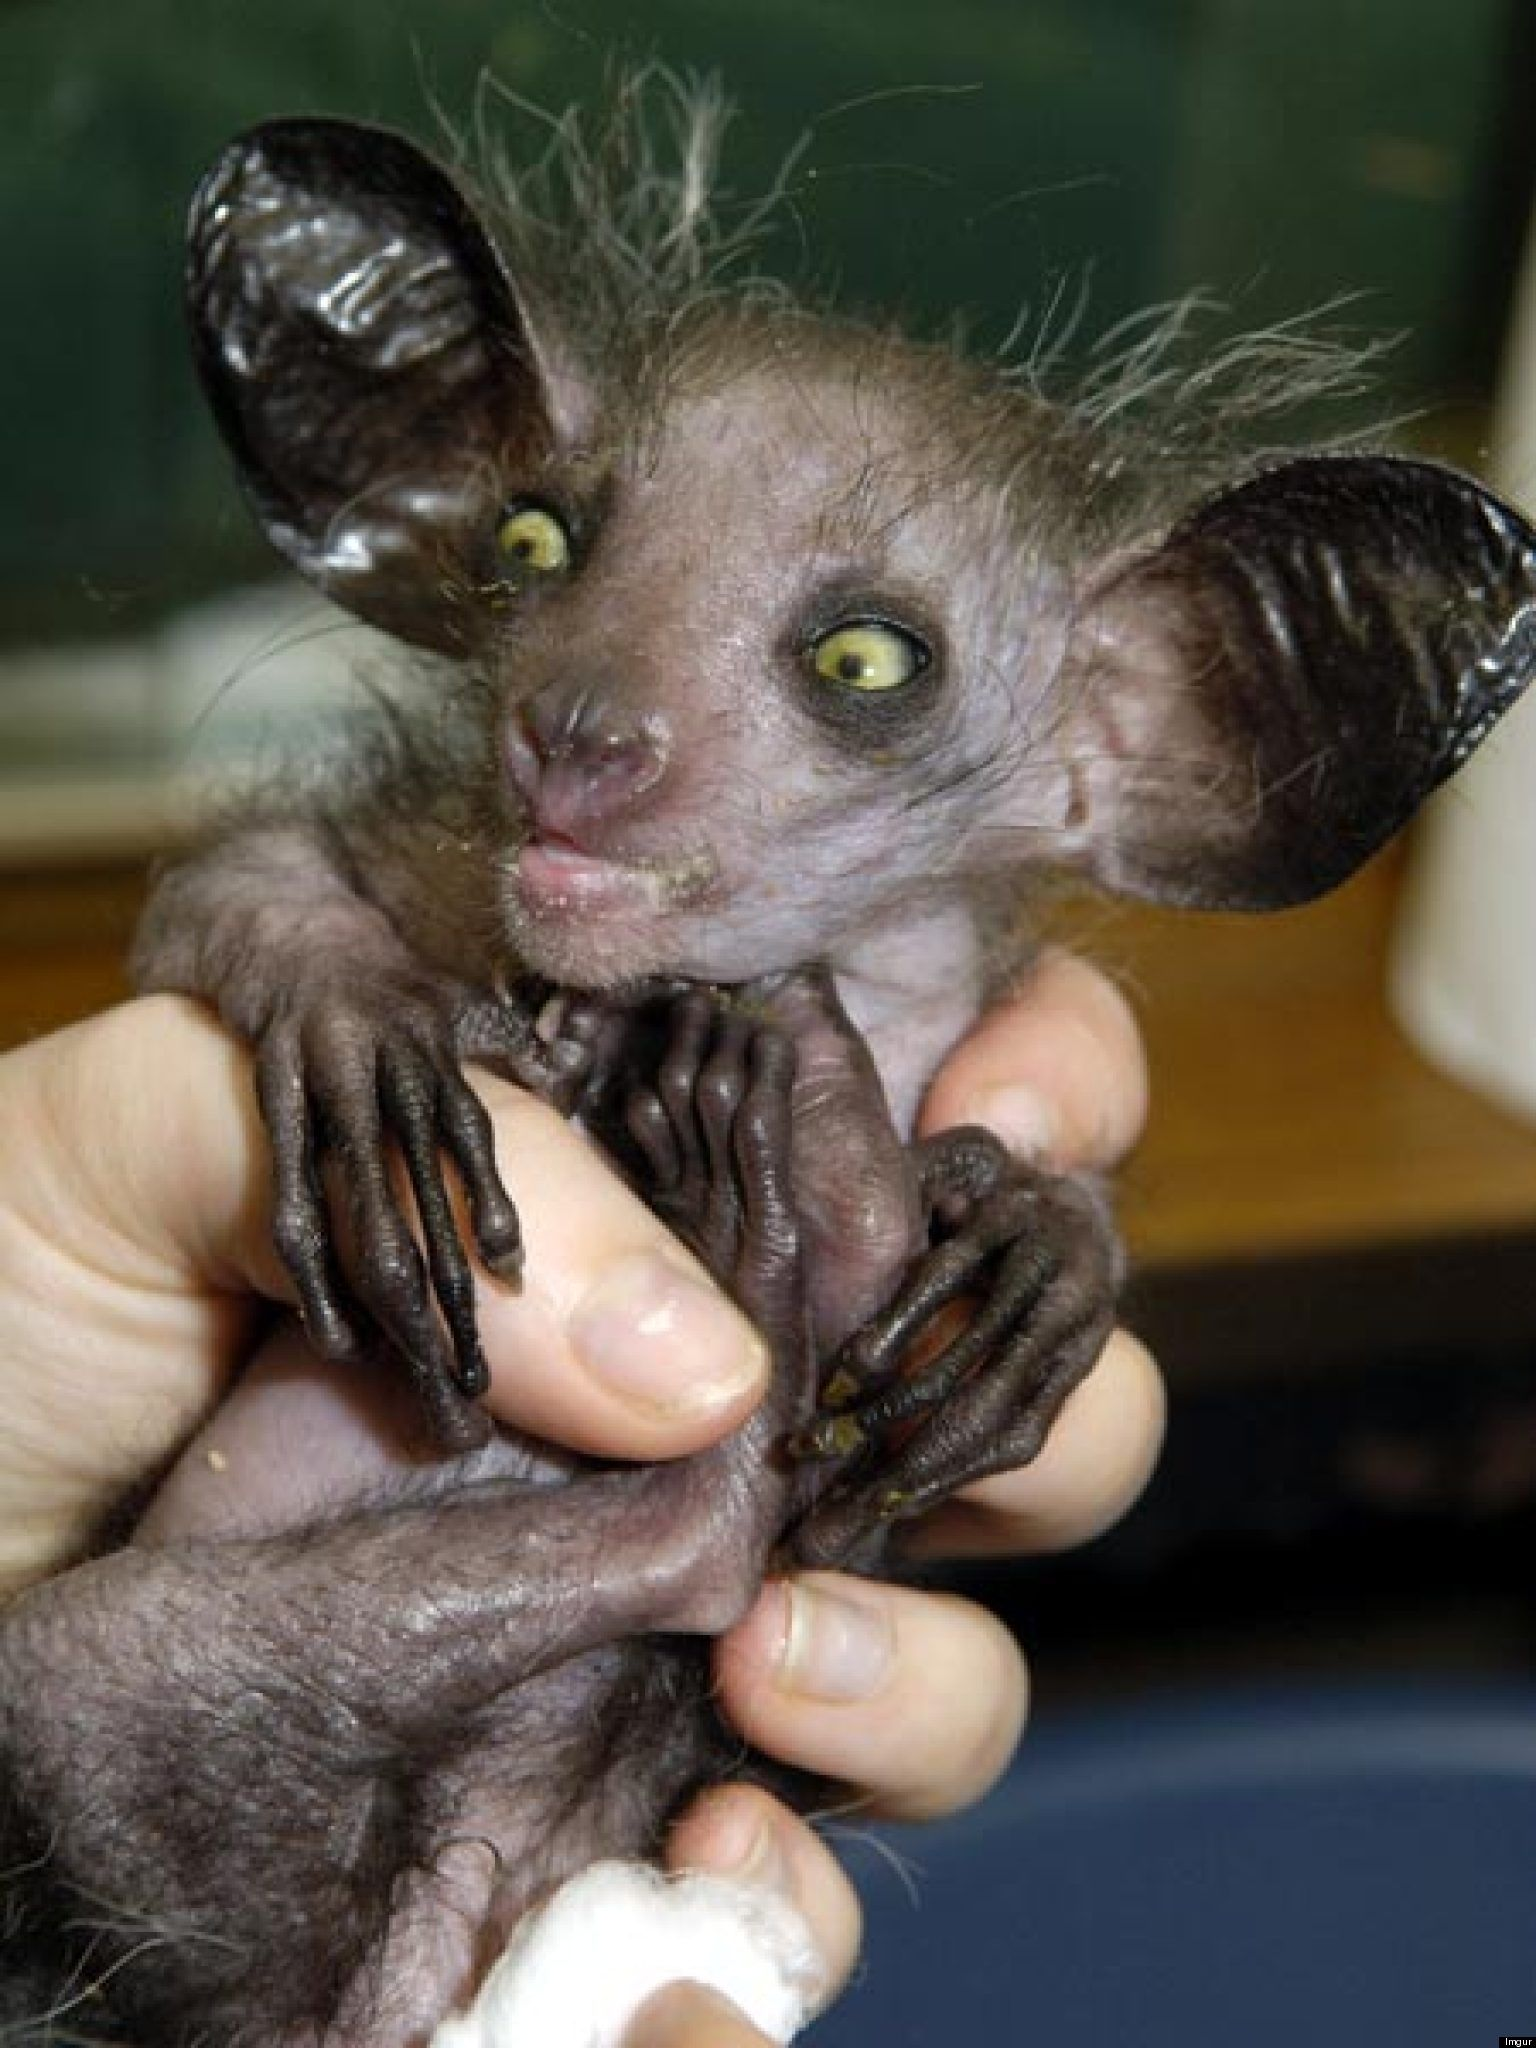 PHOTO: Quite Possibly The World's Ugliest Animal | Scary animals, Weird  looking animals, Creepy animals